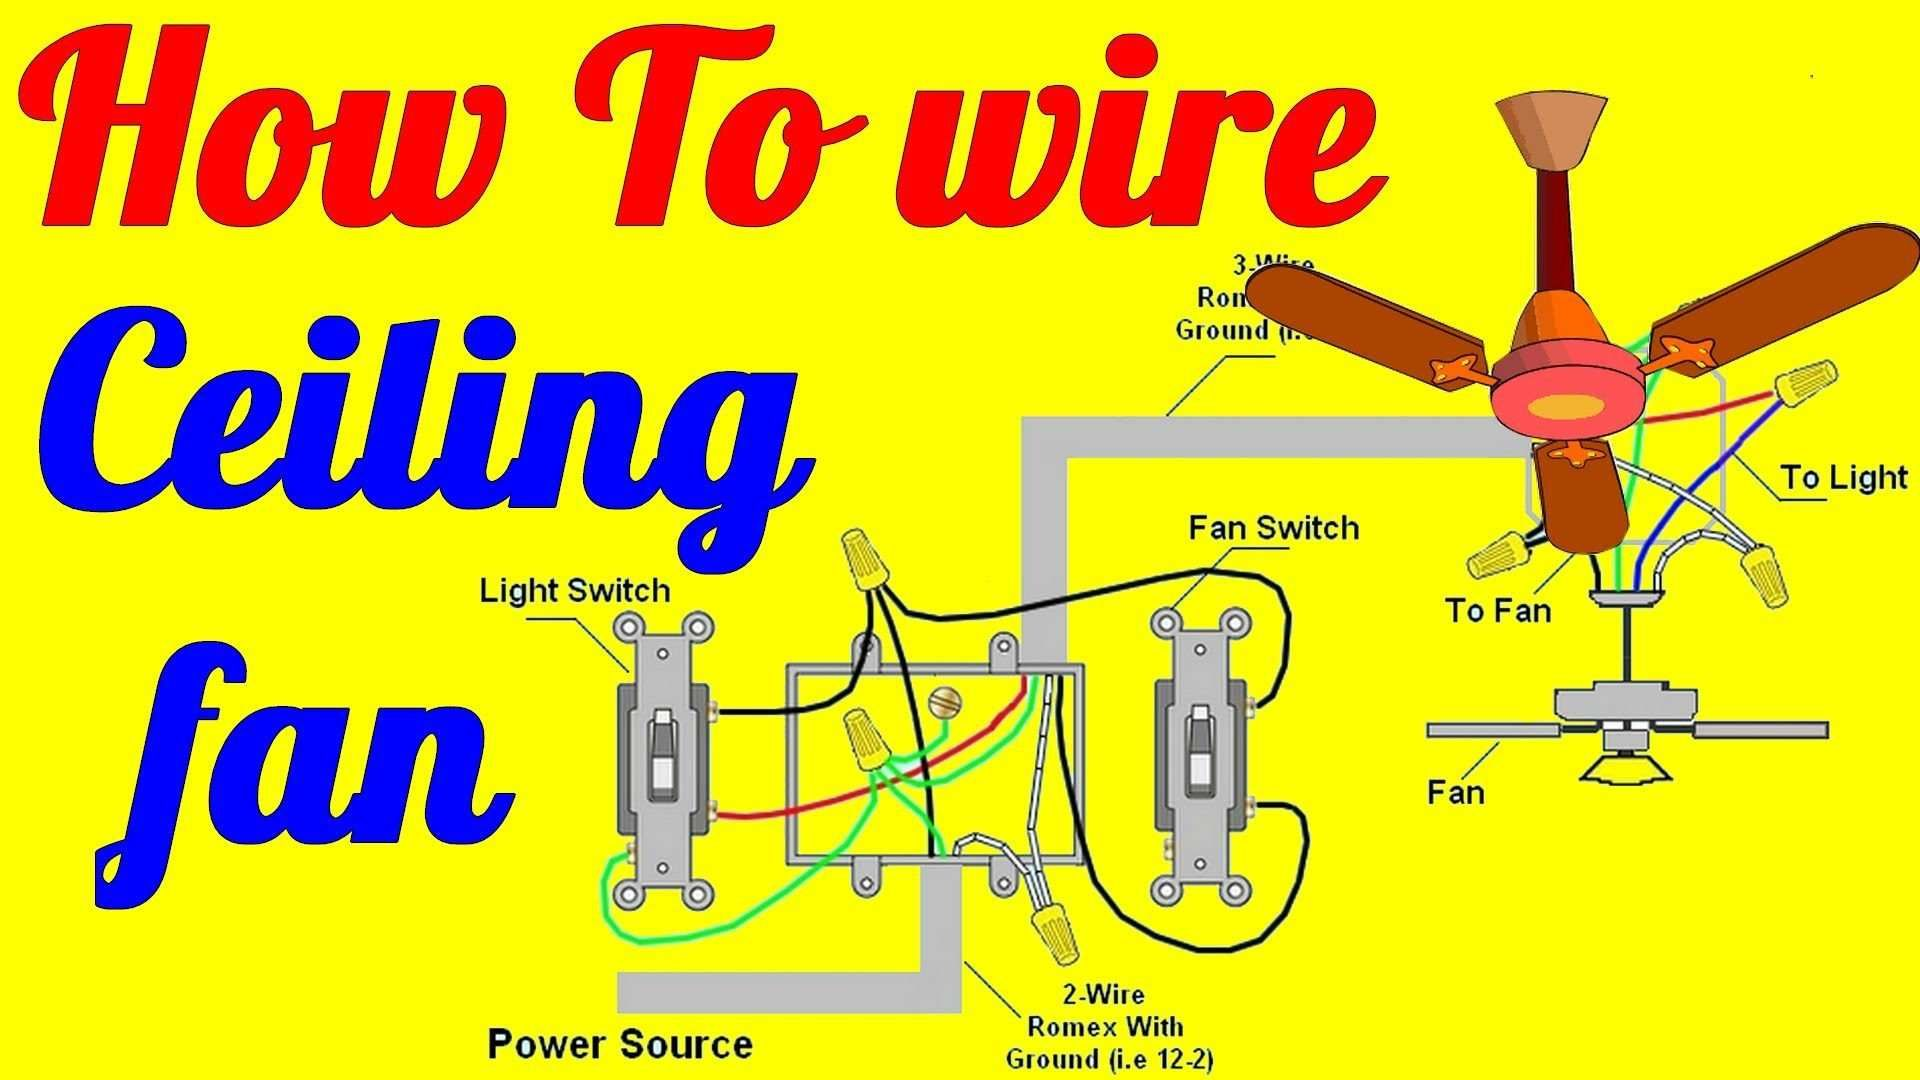 hight resolution of wiring diagram for hunter ceiling fan with light elegant how to wire ceiling fan with light switch youtube harboreze wiring